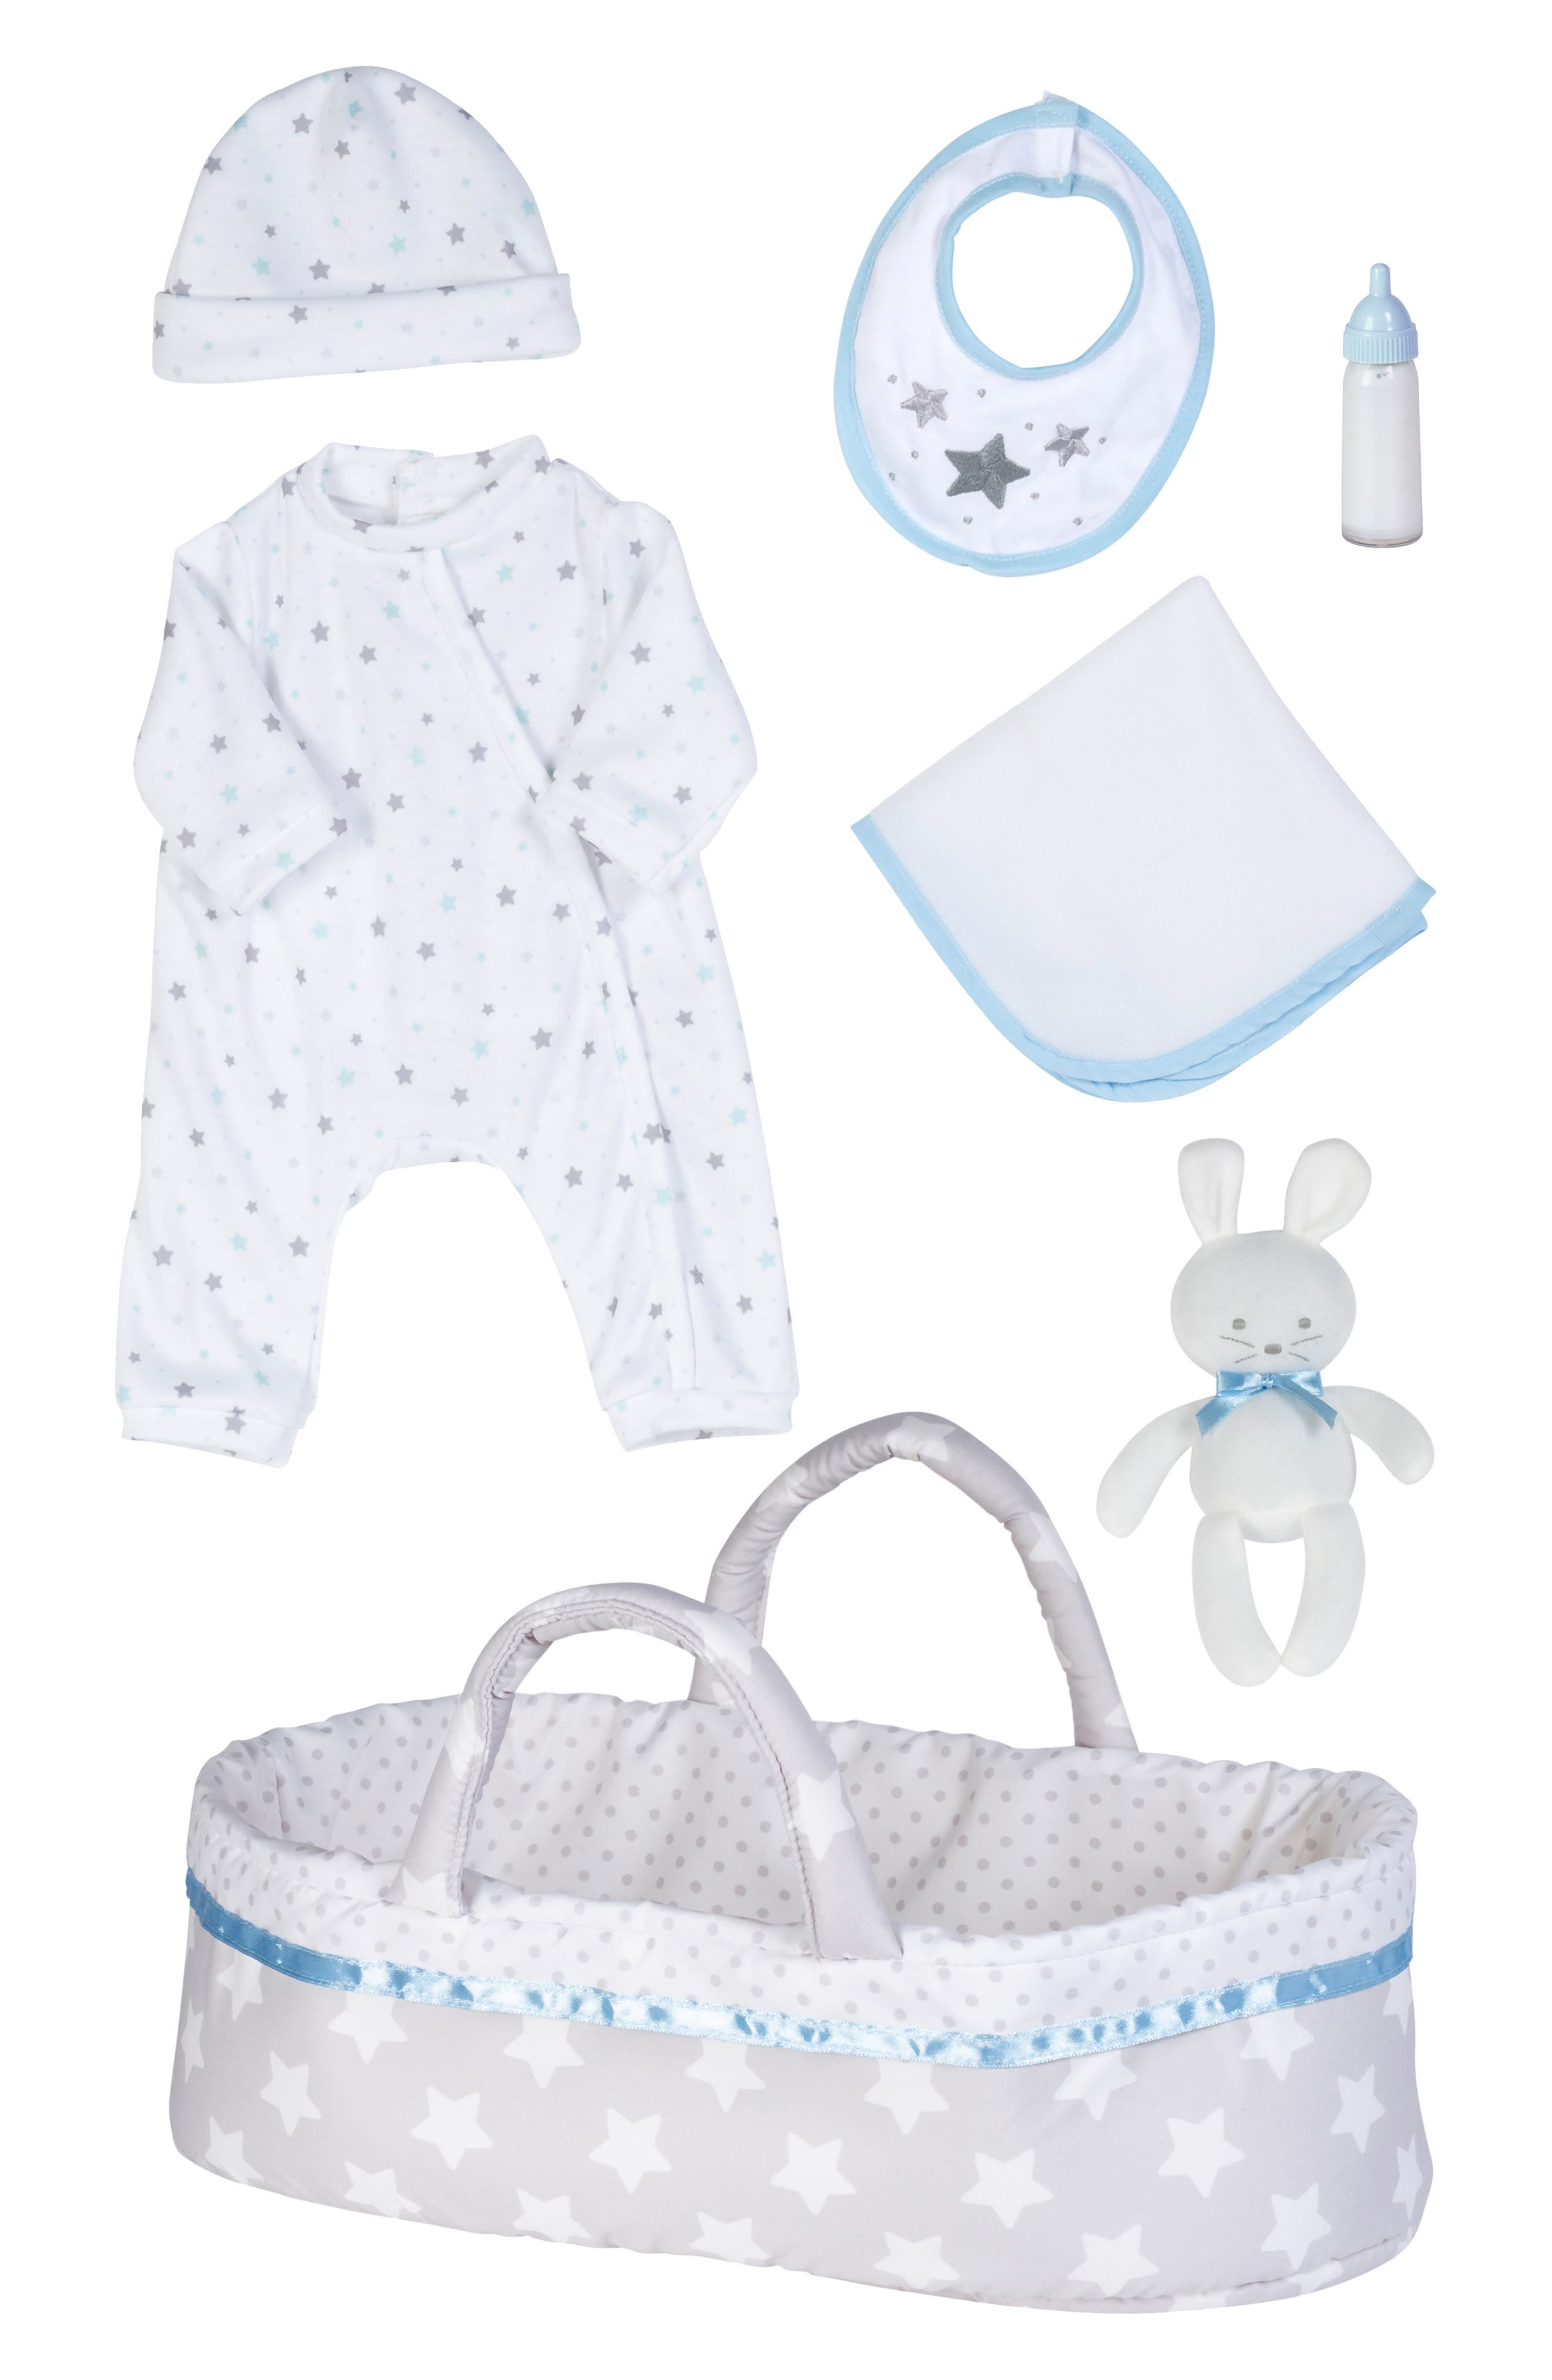 ADORA, Adoption 8-Piece Take Me Home Baby Doll Essentials Set, Main thumbnail 1, color, WHITE AND BLUE